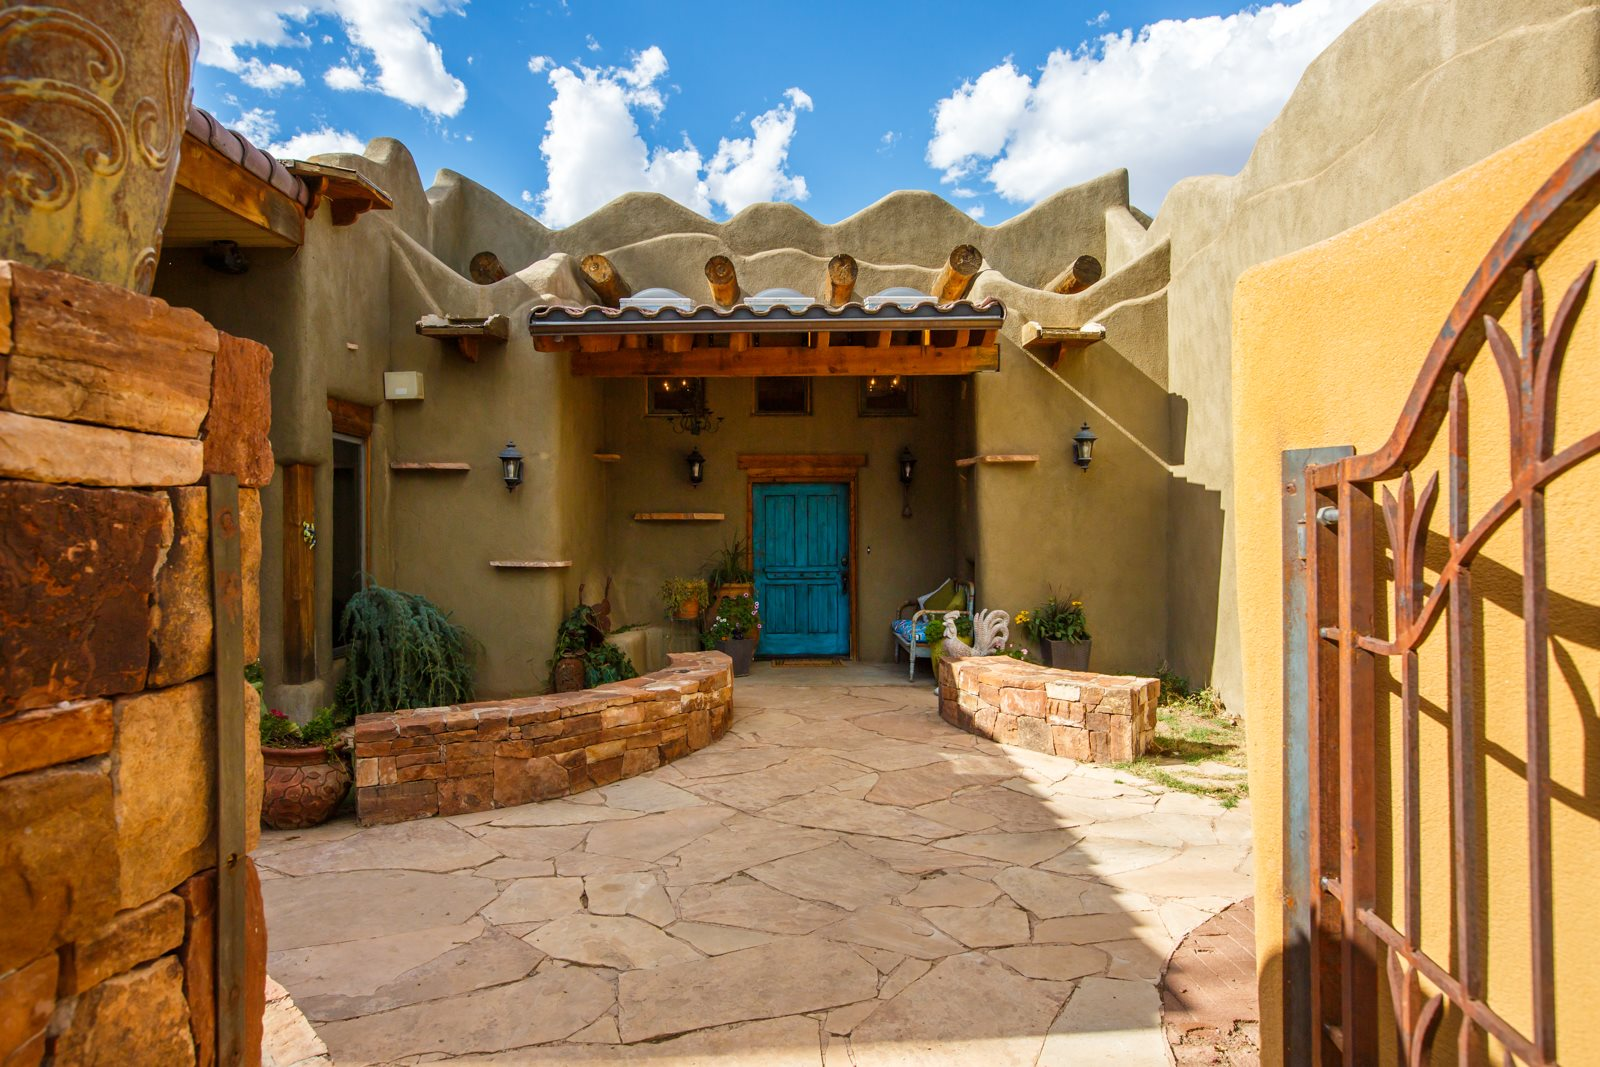 Love the artistic, colorful flair of classic Santa Fe/Taos adobe luxury architecture, but prefer something more centrally located in the Land of Enchantment? In the North Valley's Los Ranchos de Albuquerque, on a full acre of irrigated land along Rio Grande Blvd, this custom, one-of-a kind home and its guardian lizard await you. Walk through the partially covered courtyard, and upon entry to the home you get a sense of spaciousness, whimsy, and Southwest artistry, in the high Viga, Latilla, and Hammered Beam ceilings, exposed adobe and diamond plaster walls, artistic mosaics, and stone floor. Multiple living spaces, indoor and out, make it easy for generations to live together. The loft wing has a separate entrance for a studio, office, or, with a bedroom, bath, living space, and room to add a kitchenette, it could be private living quarters for parents, teens, or adult children starting out. This adobe home is efficient, with radiant in floor heat, and refrigerated air to complement passive nighttime cooling. The garage and workshop, with a half bath, and rooftop deck access for enjoying the night sky or balloons in flight, complete the home. Want more? There's plenty of room to add a pool, barn or both! Come home to the central Rio Grande Valley where you can get more for less and still enjoy the quality and style you expect from a classic Northern New Mexico adobe home.